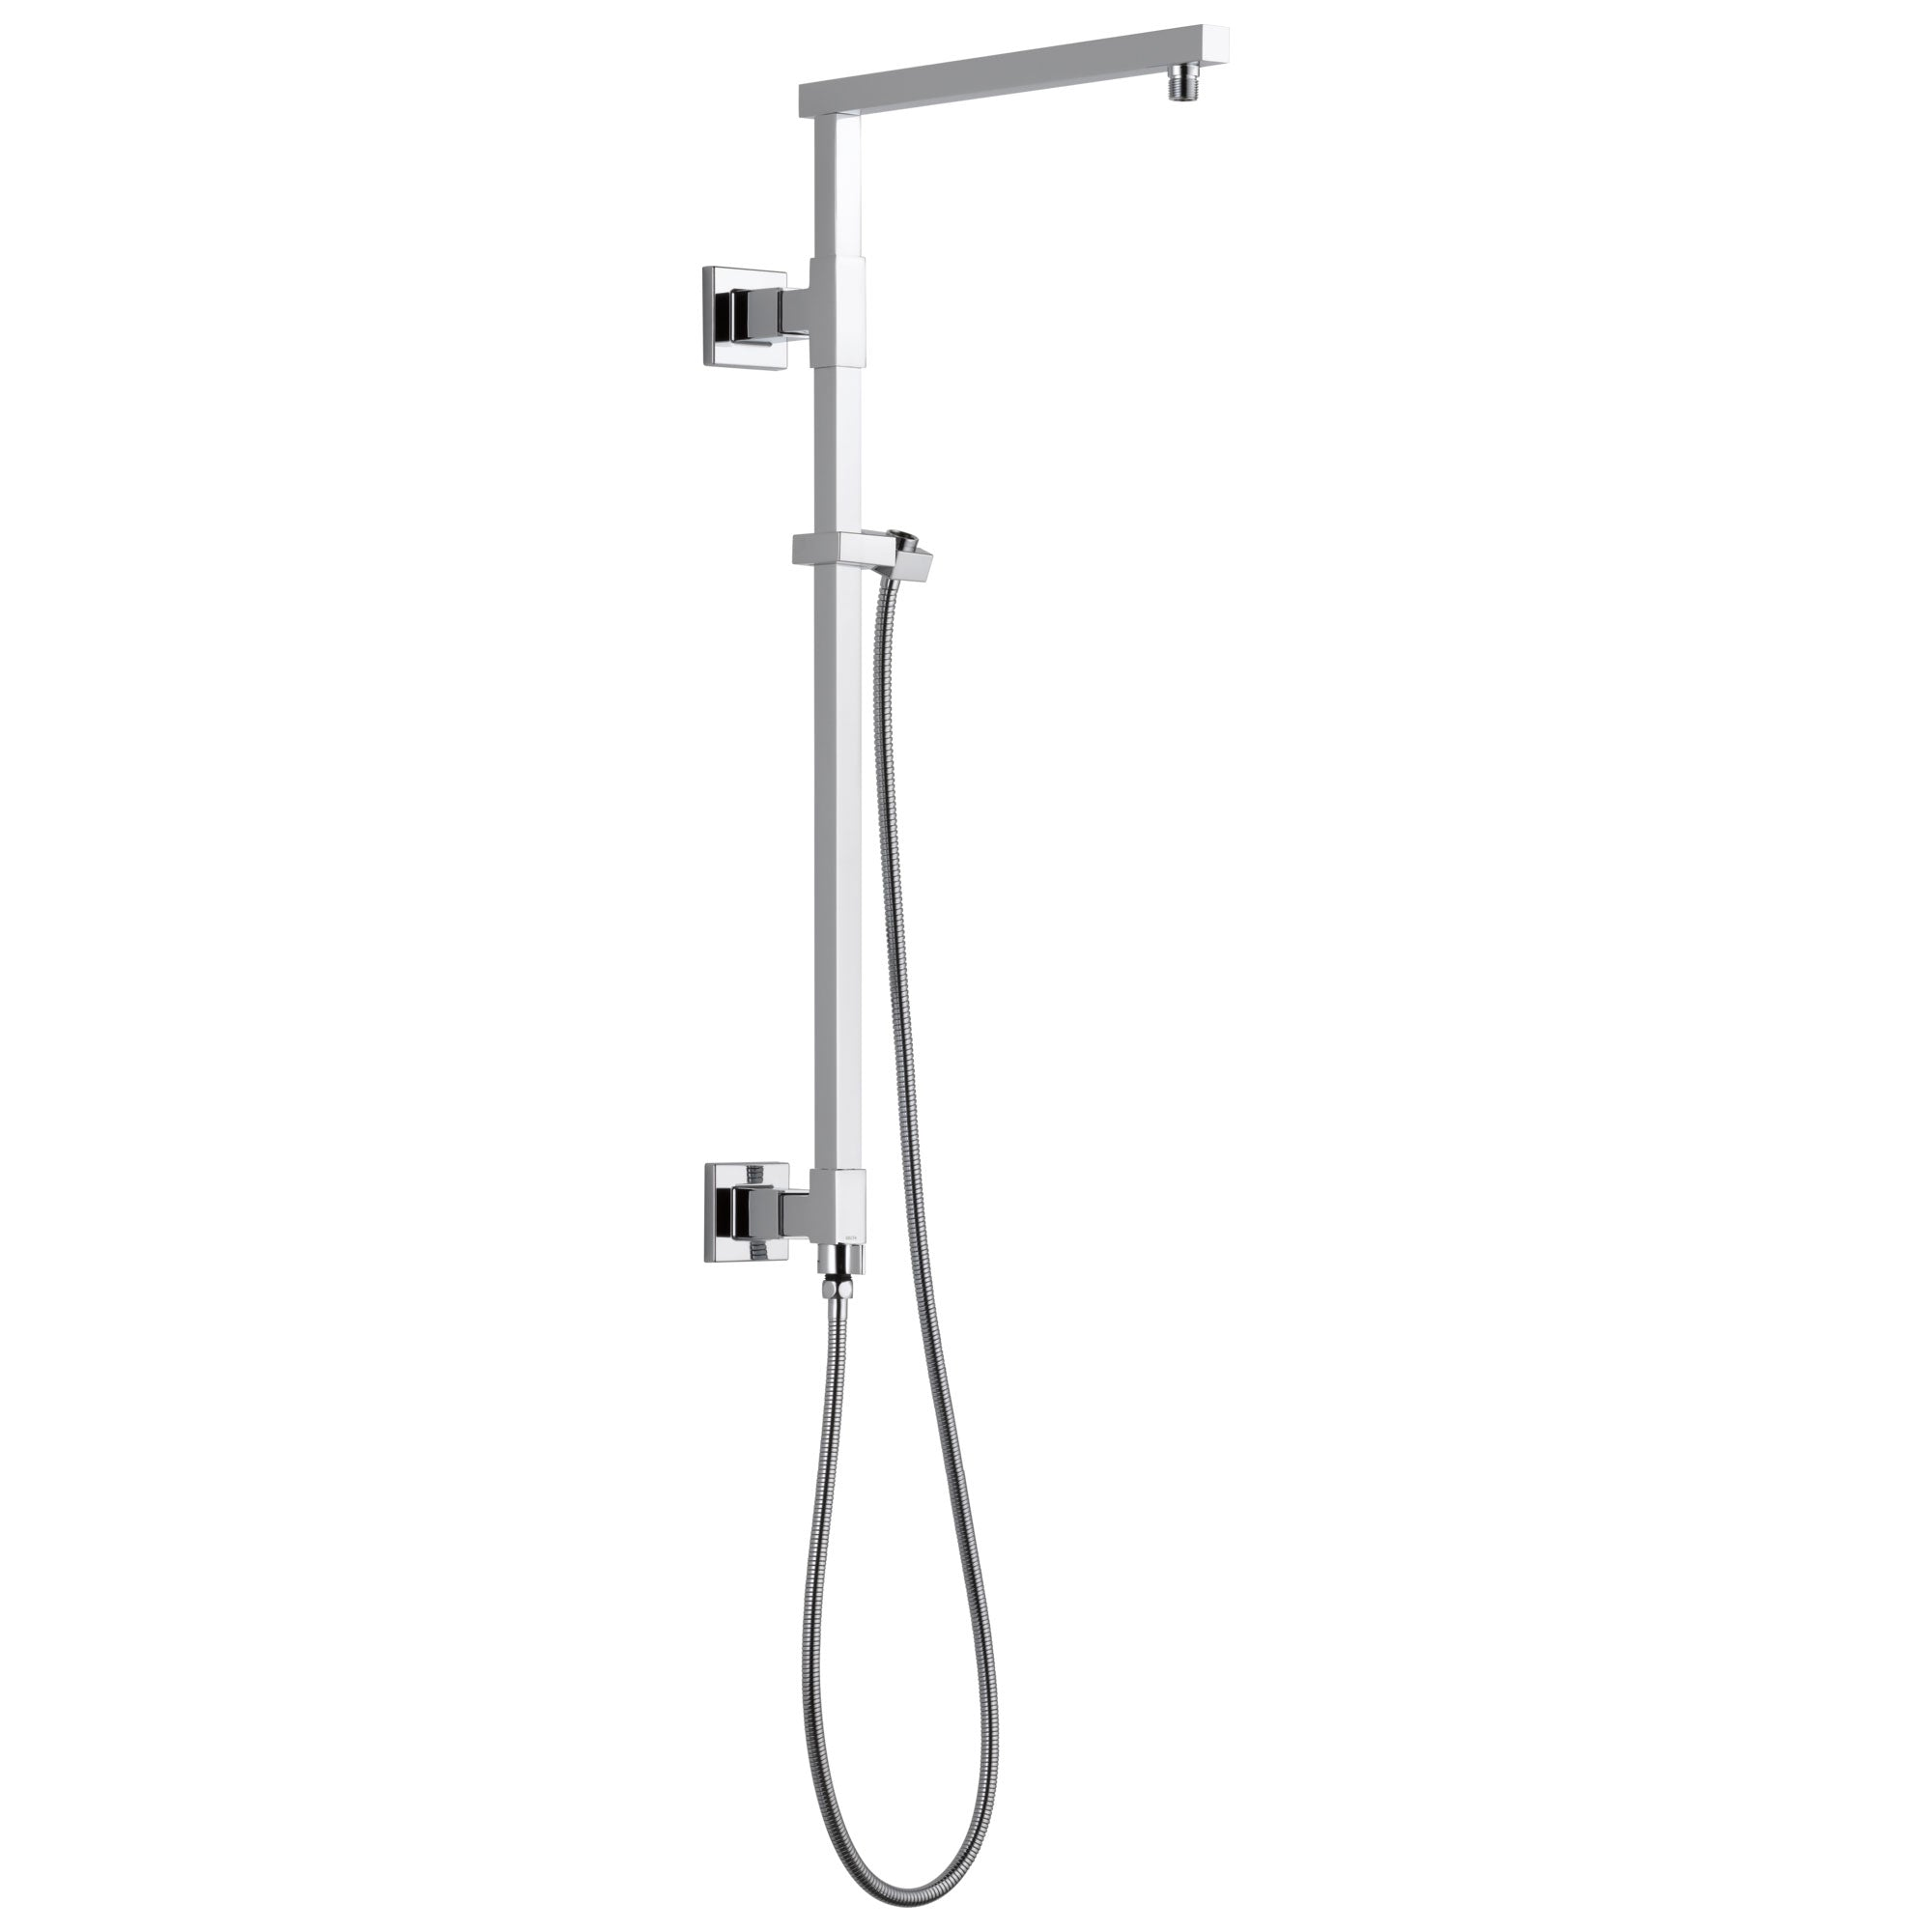 "Delta Chrome Finish Emerge Modern Angular Square Shower Column 26"" (Requires Showerhead, Hand Spray, and Control) D58420"